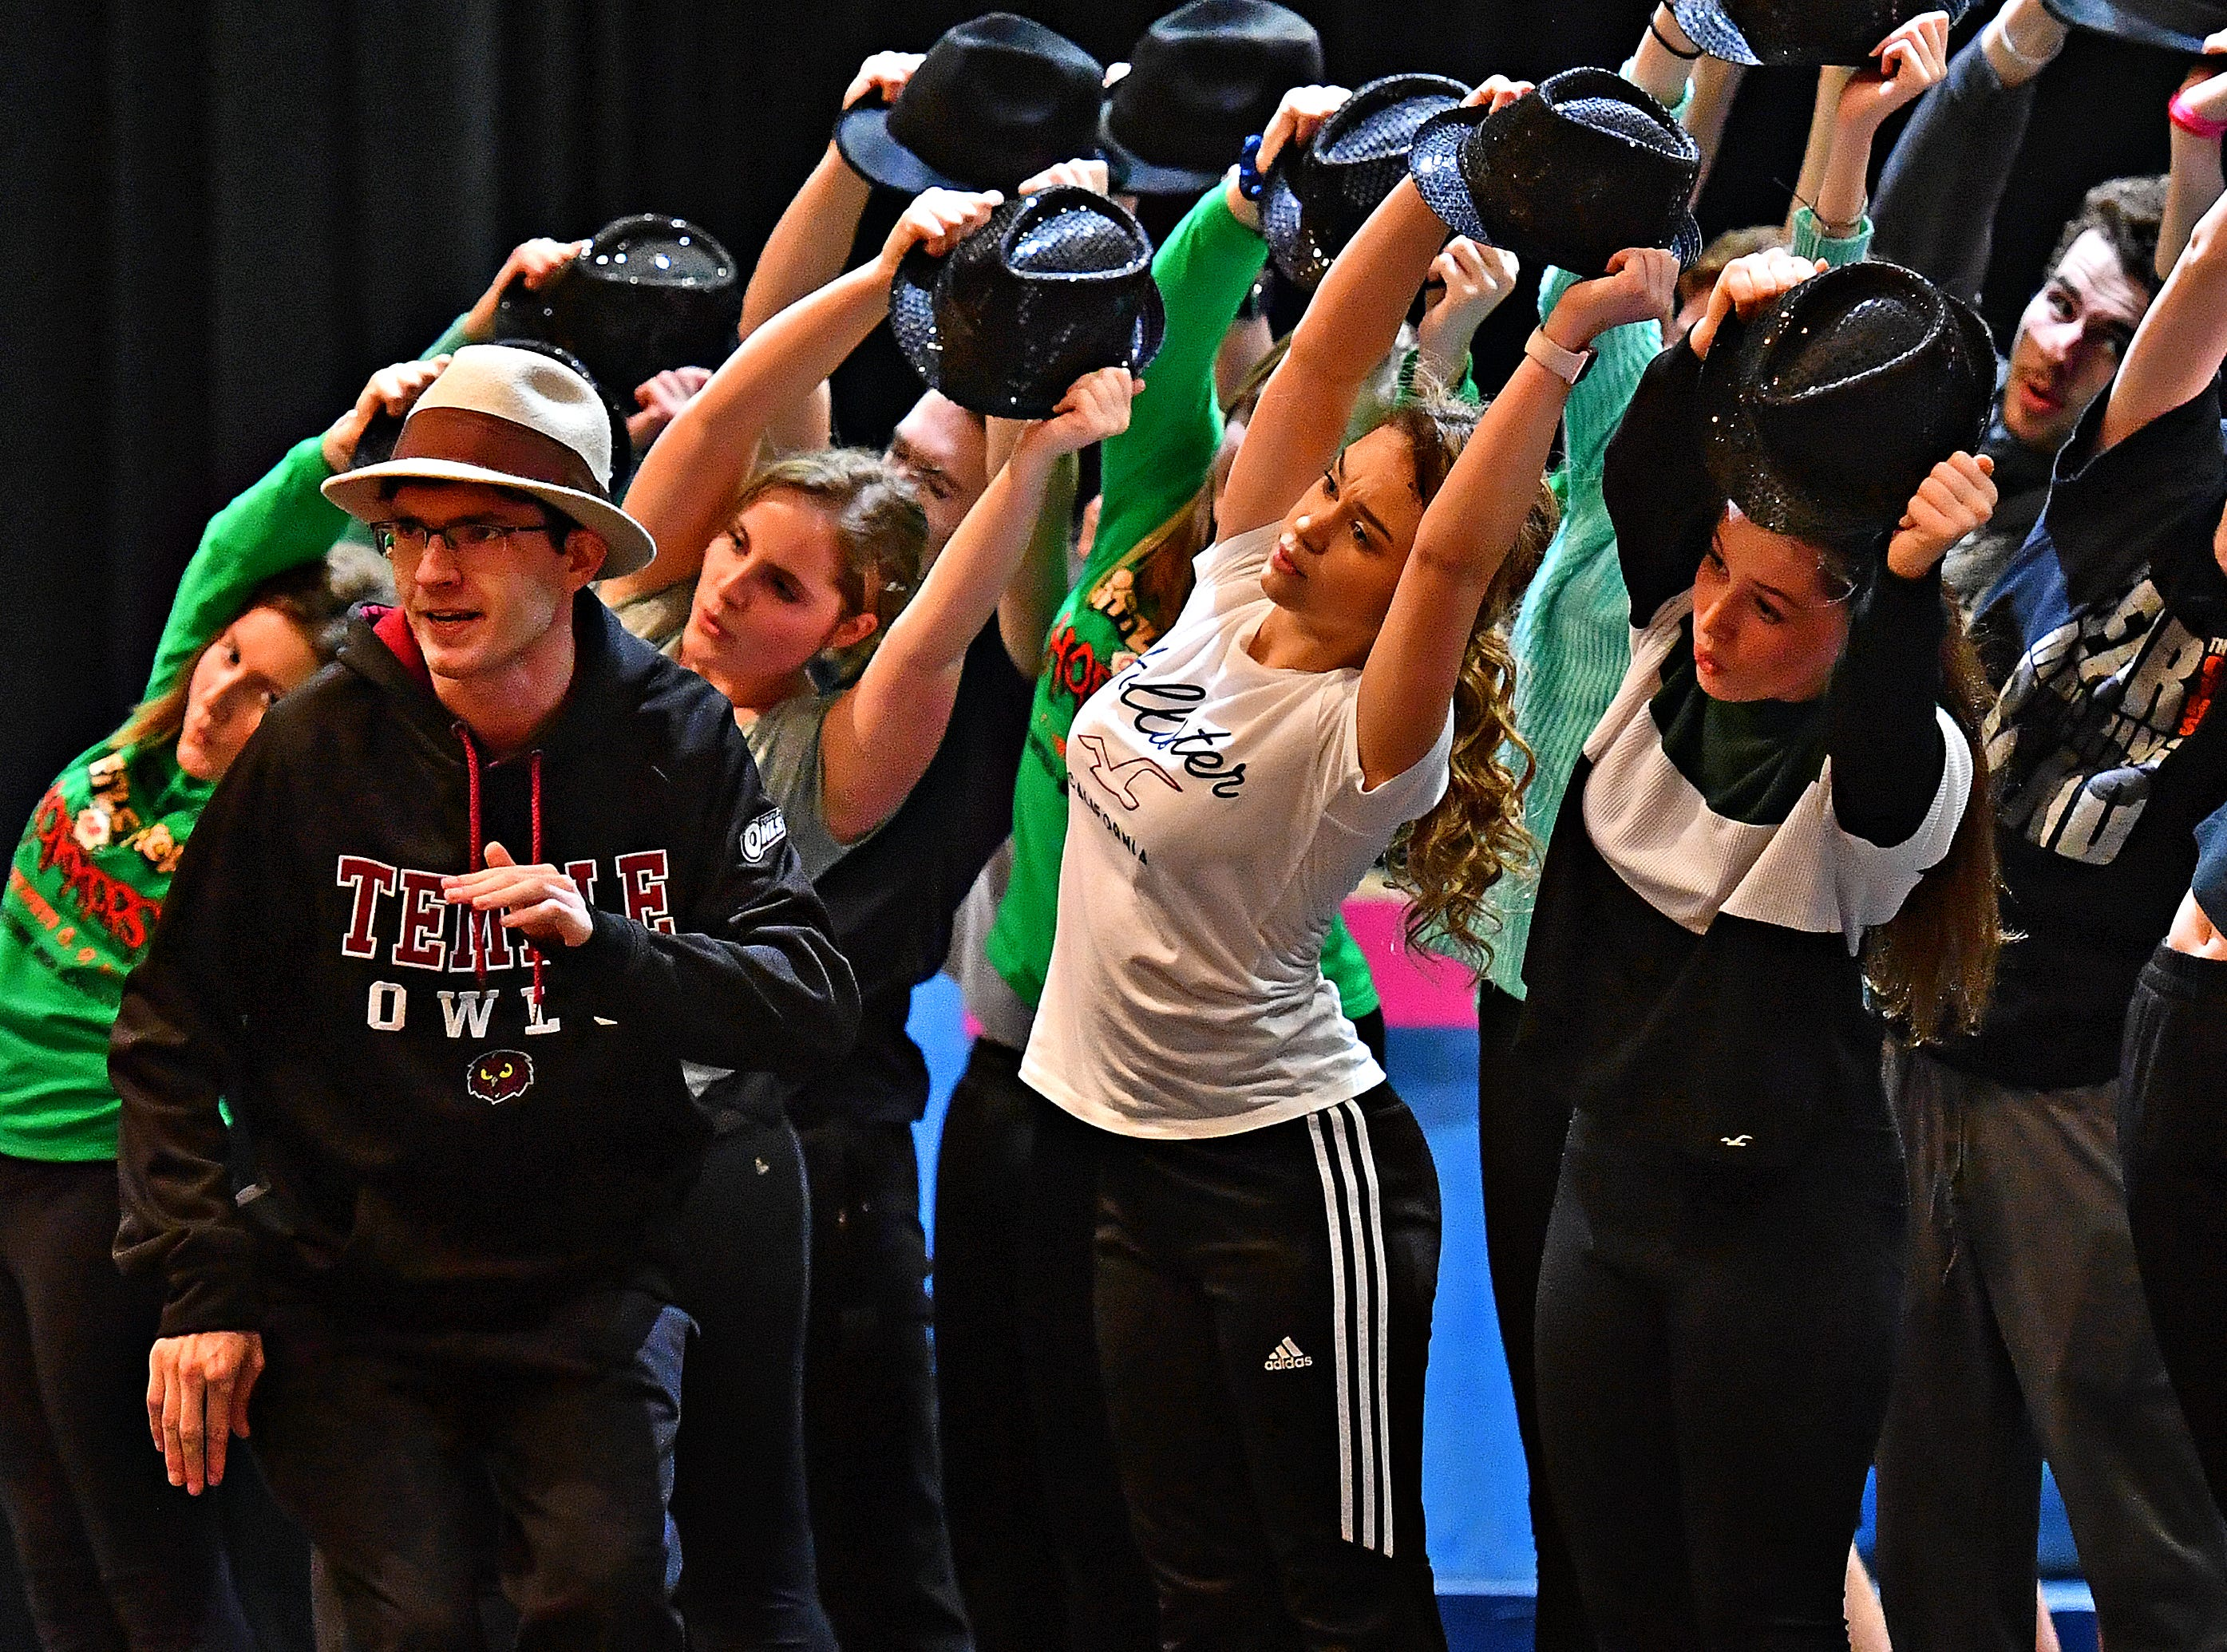 """Central York senior Joe Woloson, front left, plays FBI agent Carl Hanratty as students rehearse for their upcoming production of, """"Catch Me If You Can,"""" at Central York High School in Springettsbury Township, Wednesday, Feb. 6, 2019. Central York is the first York area school to perform the production Feb. 15-17. Dawn J. Sagert photo"""